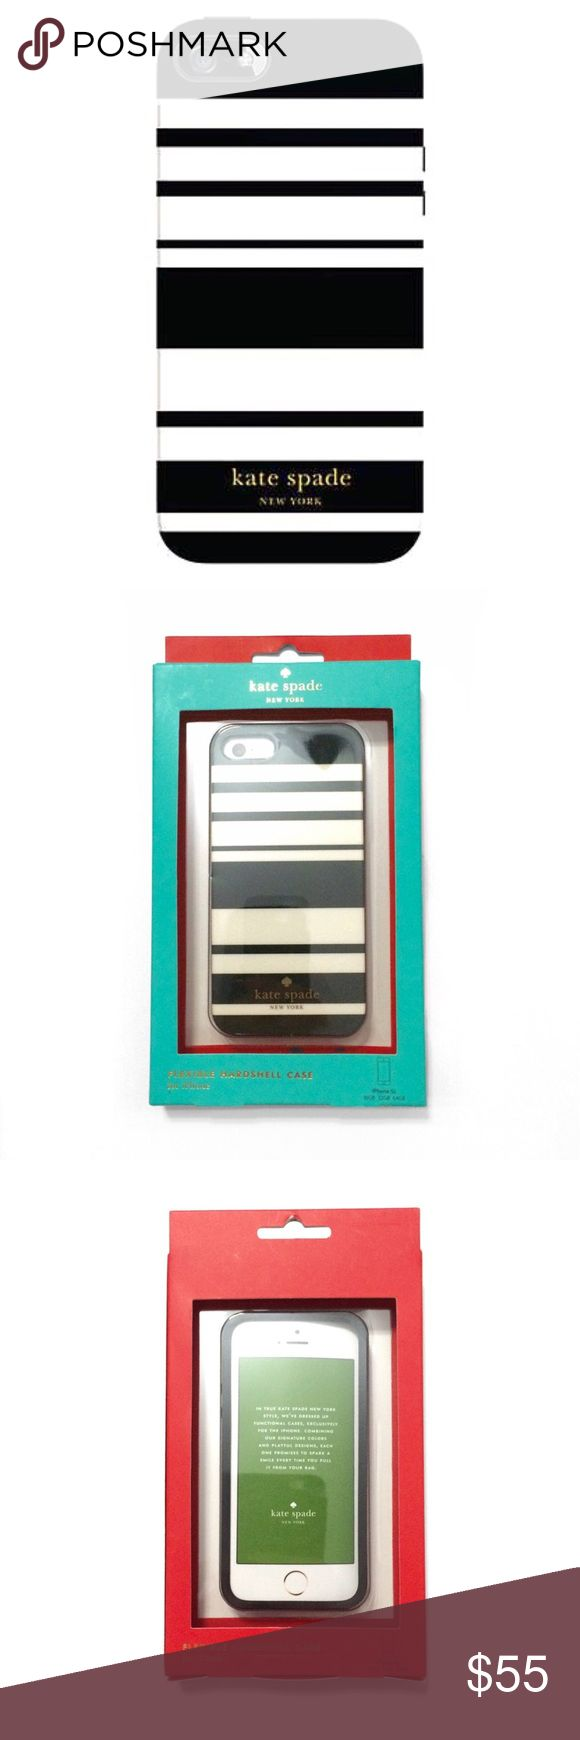 Kate Spade Stripe iPhone SE 5/5S Case BNIB  Flexible hardshell case. This fits the new iPhone SE and the iPhone 5 and 5S. The exterior packaging may have some imperfections, but any damage to the box does not affect the product at all.  ❌ Sorry, no trades. kate spade Accessories Phone Cases